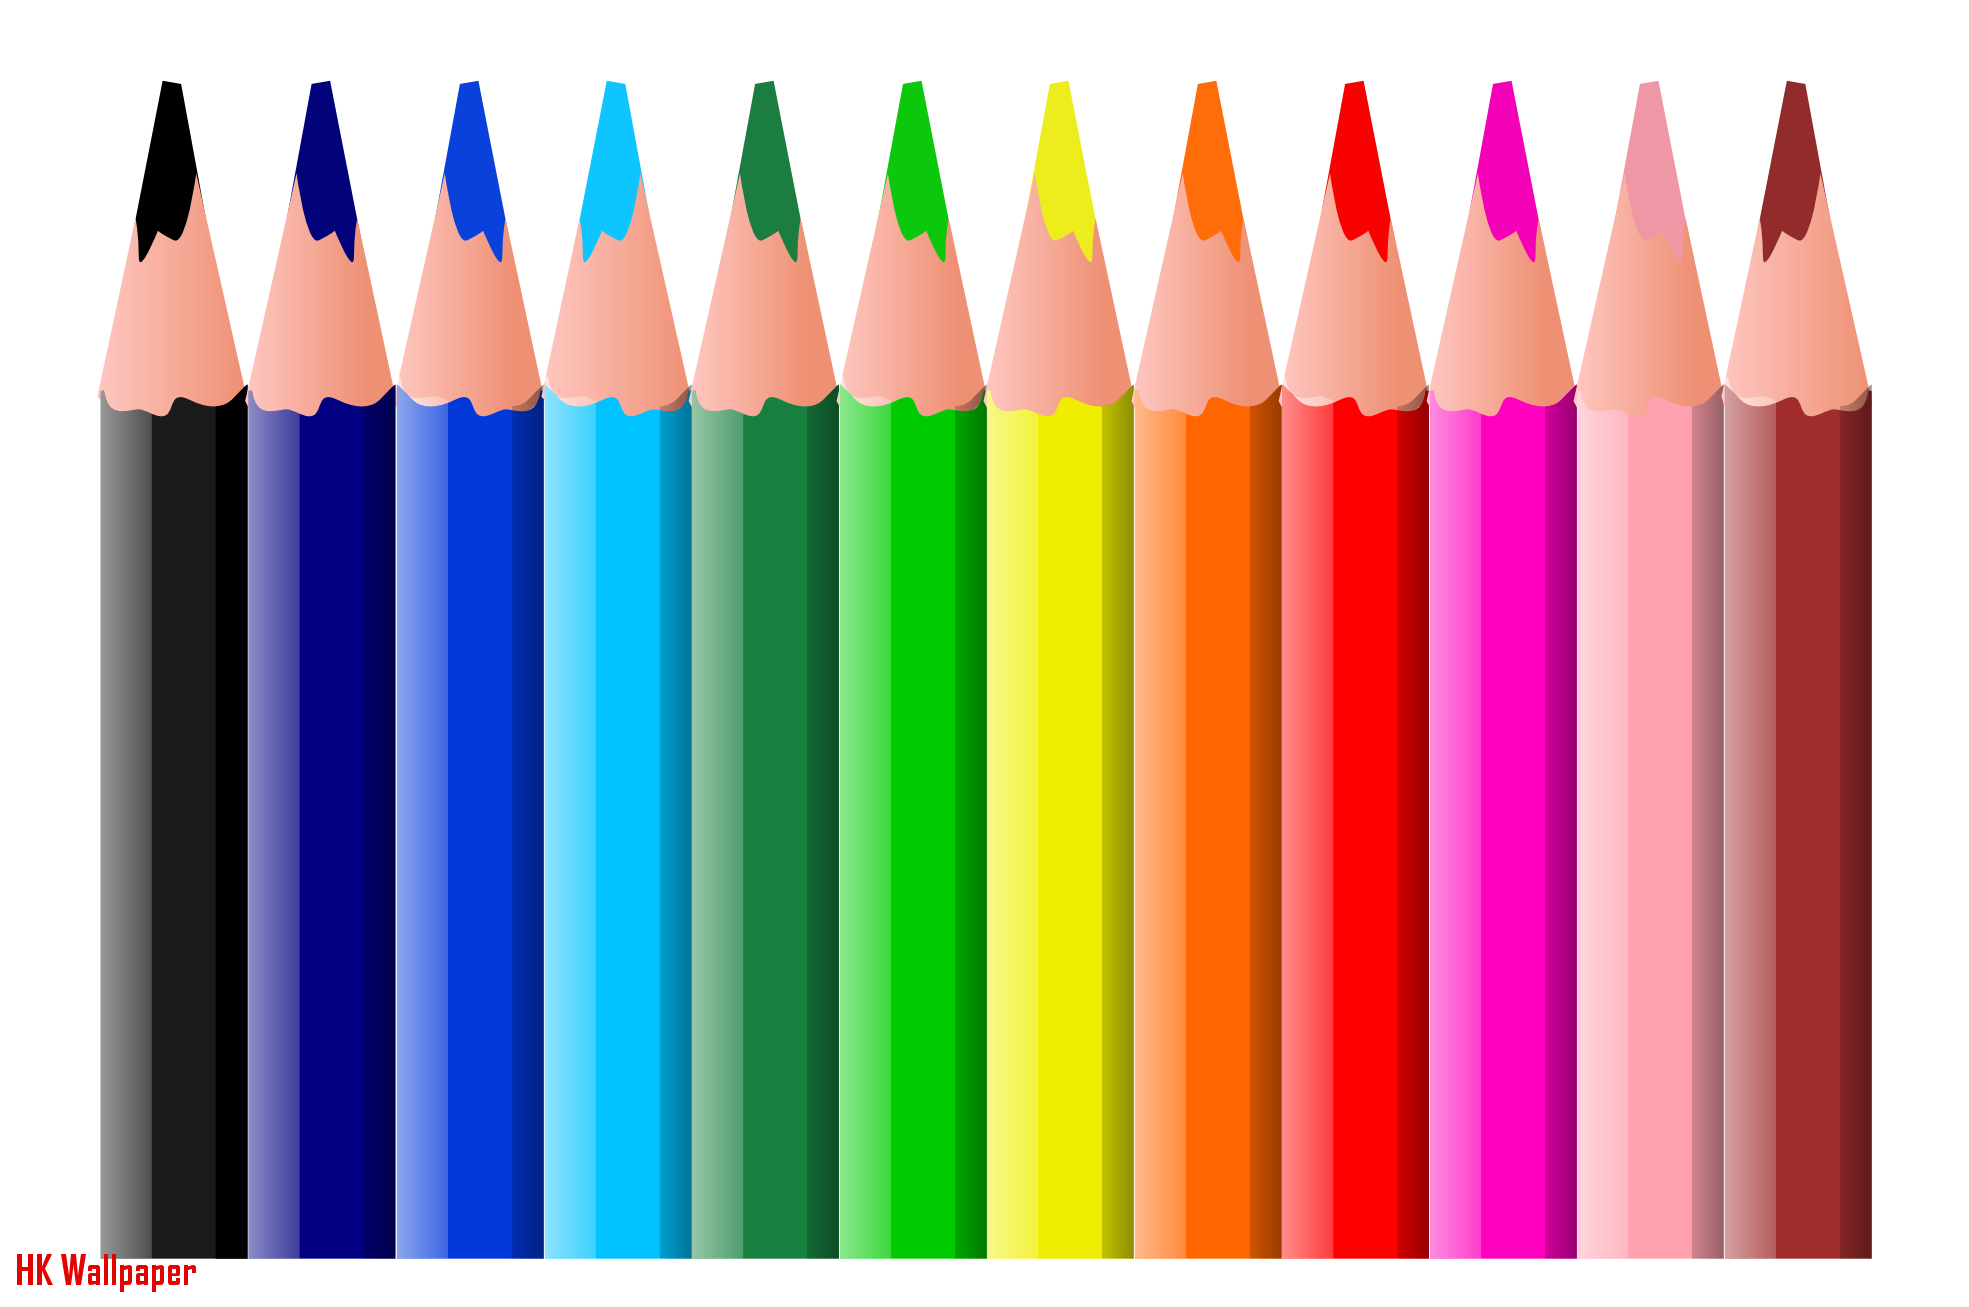 Elegant Color Pencil Crayons | HK Wallpaper